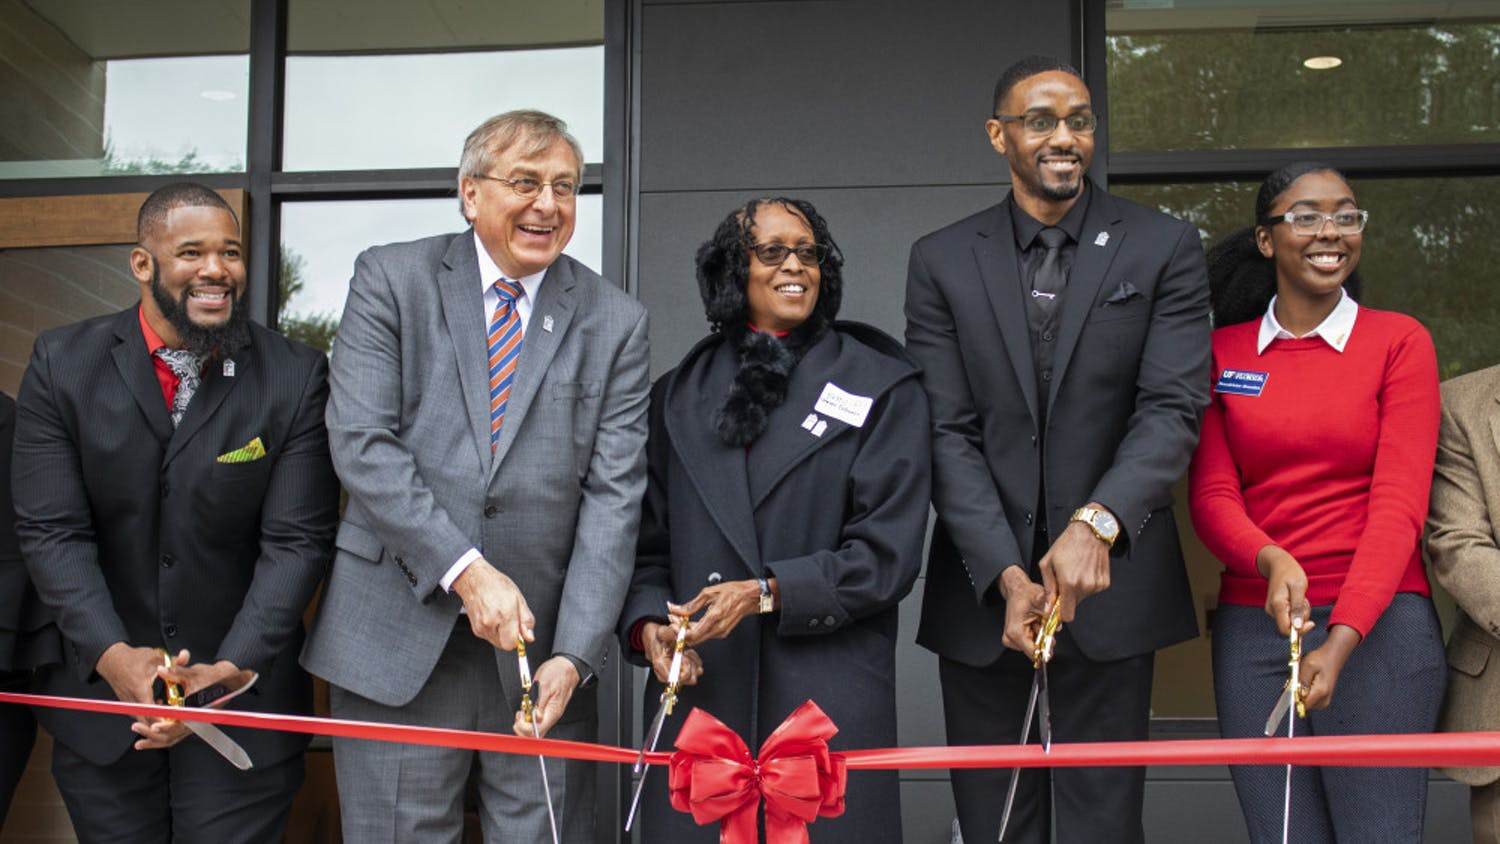 Carl Simien, UF President Kent Fuchs, Betty Stewart-Fullwood, William Atkins and Beaudelaine Mesadieu cut a ribbon Saturday, officially opening up the new Institute of Black Culture.